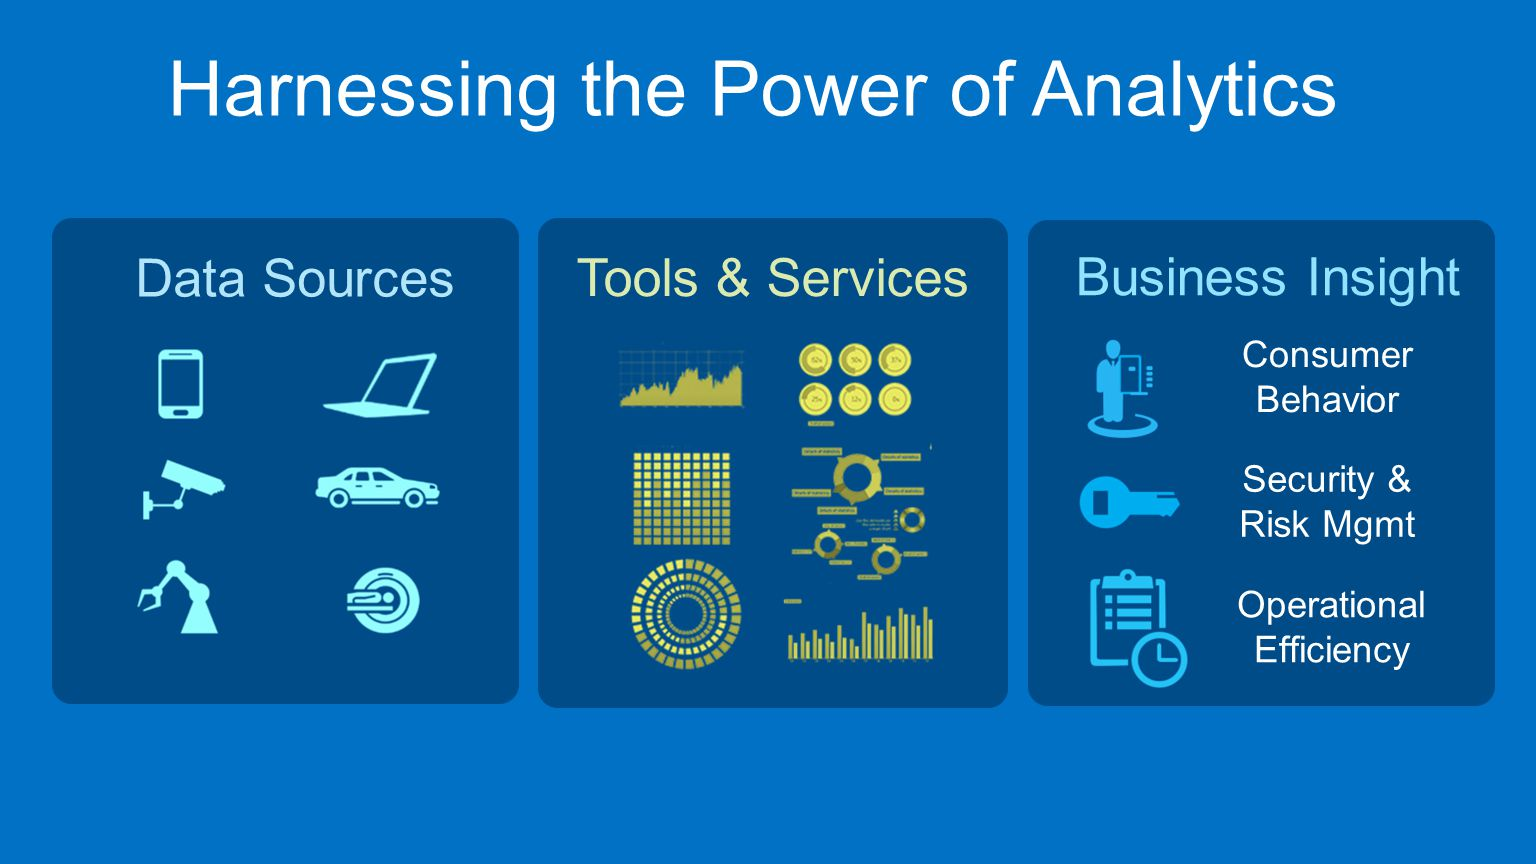 Data Sources Tools & Services Business Insight Operational Efficiency Security & Risk Mgmt Consumer Behavior Harnessing the Power of Analytics